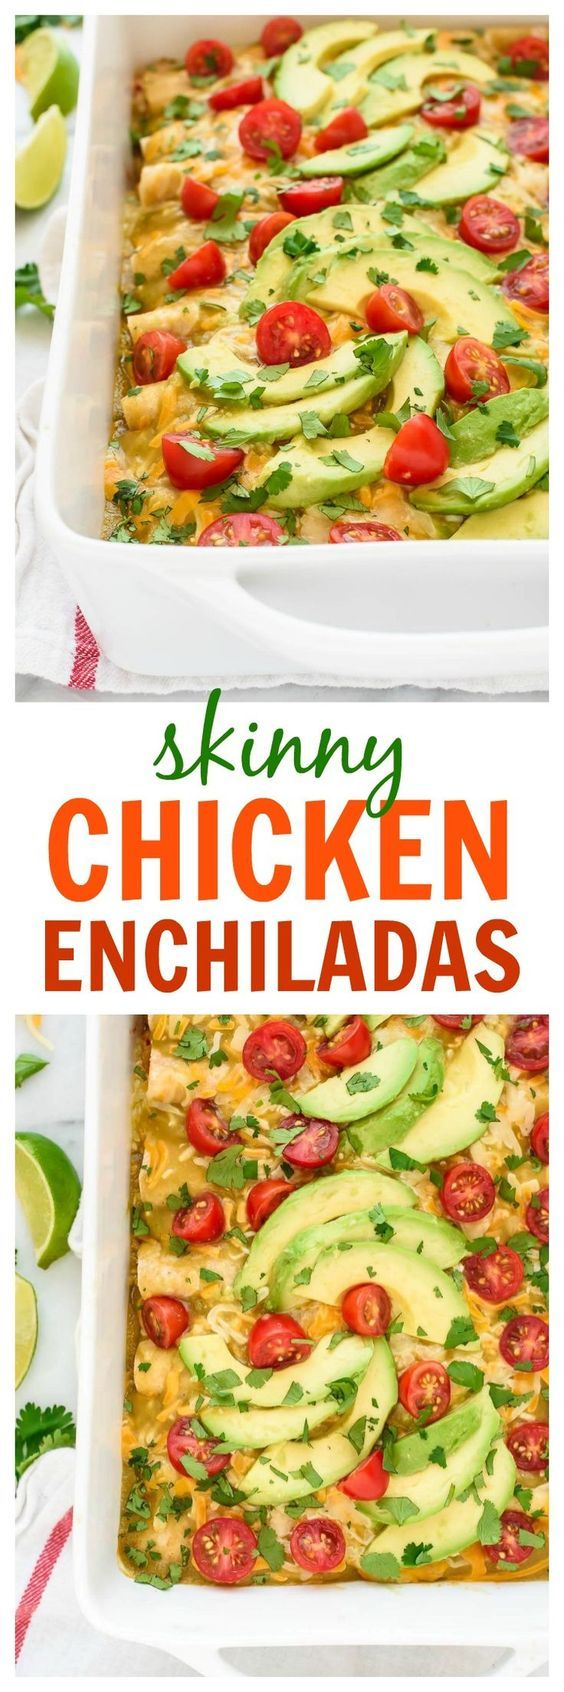 This simple and healthy recipe for Creamy Chicken Enchiladas is the BEST! Easy to make, freezer-friend